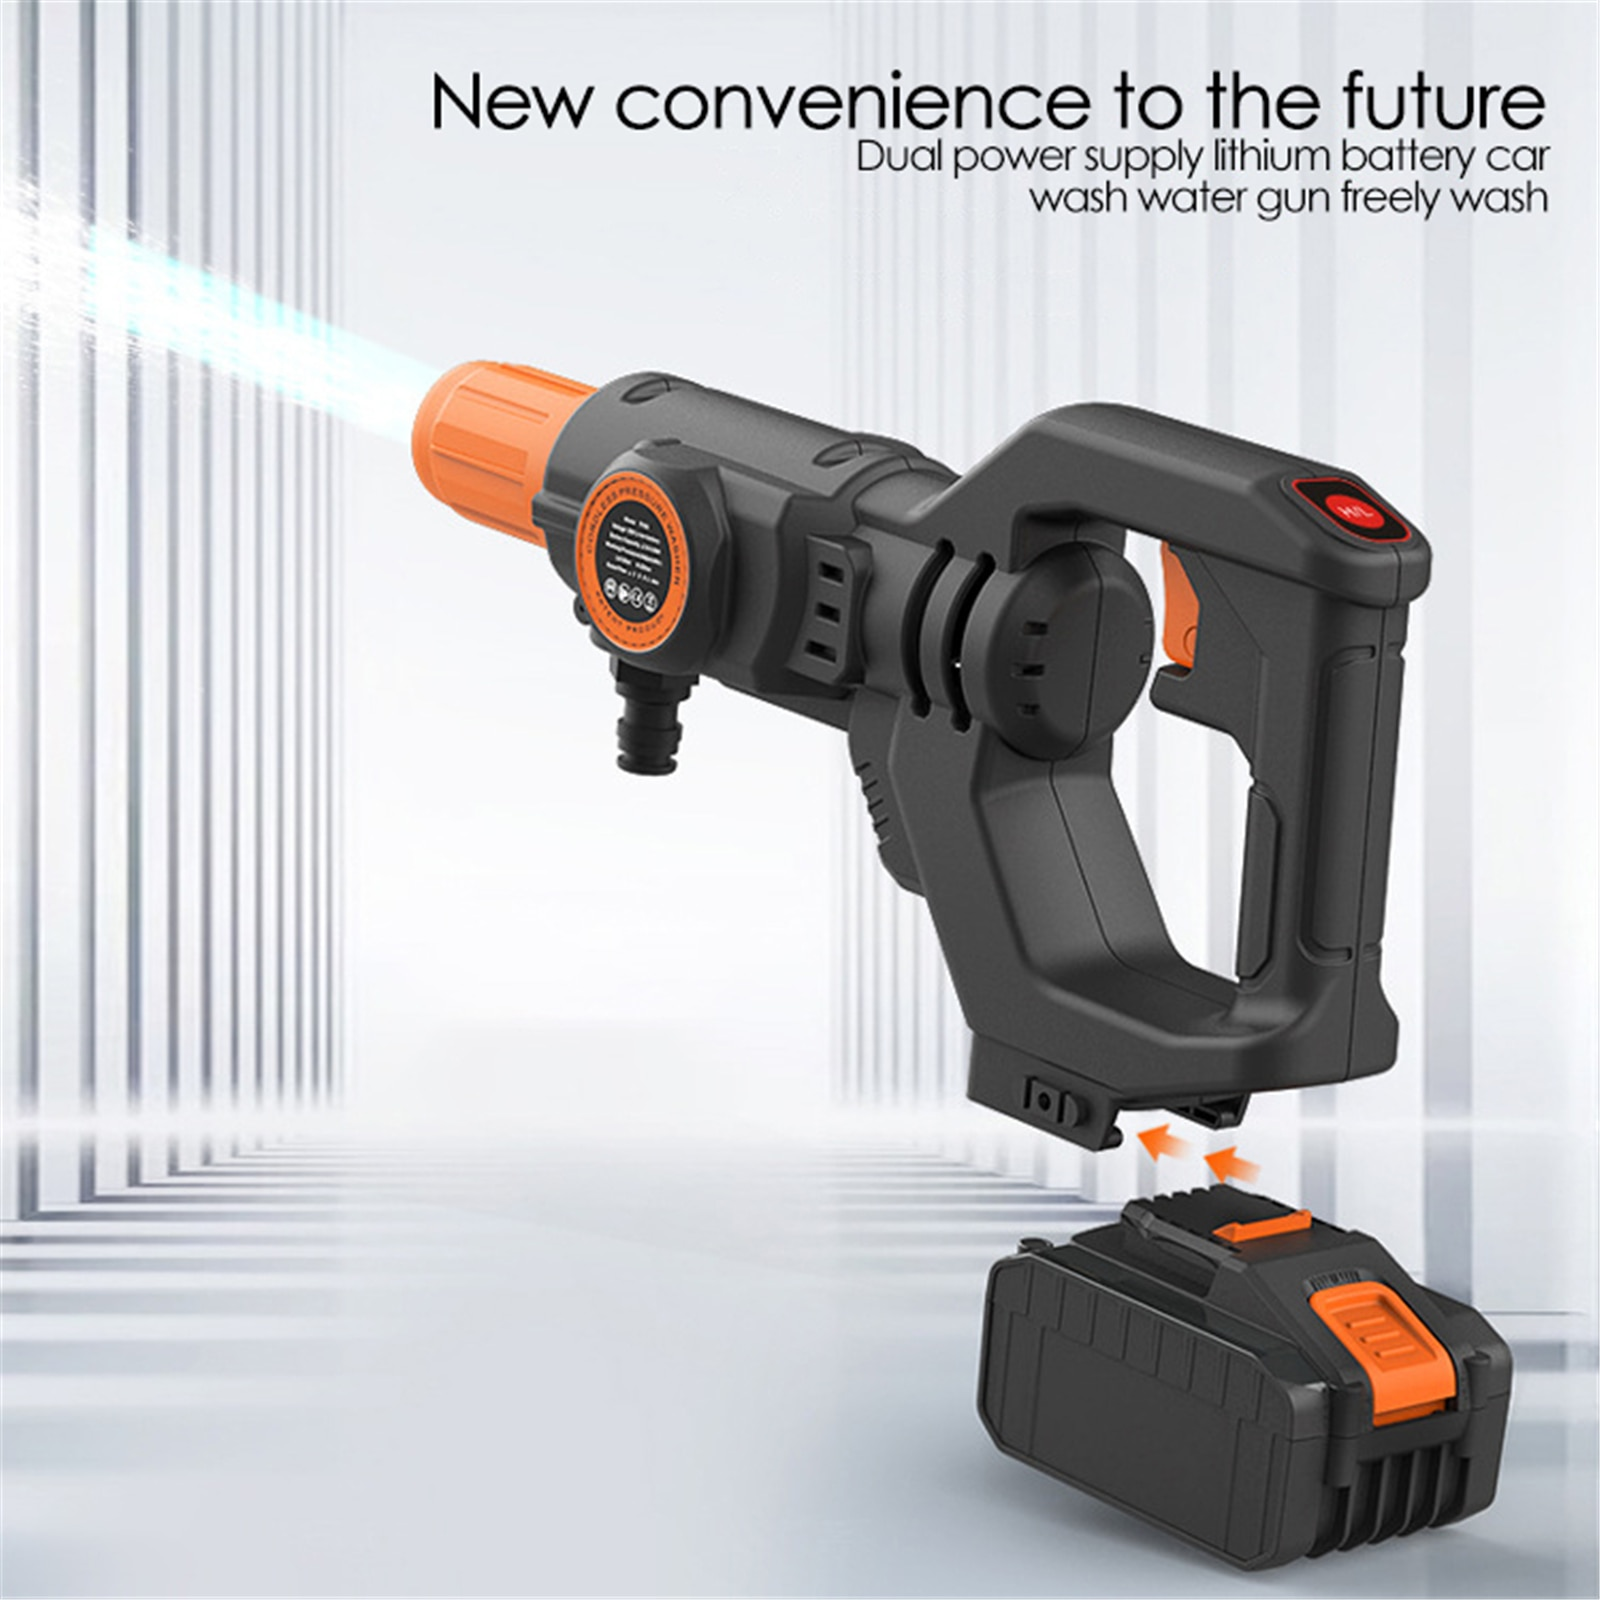 20V Cordless Pressure Washer Portable Car Cleaner With Two Nozzles, Hose,and Foam Pot Widely Used For Car And Ground Washing